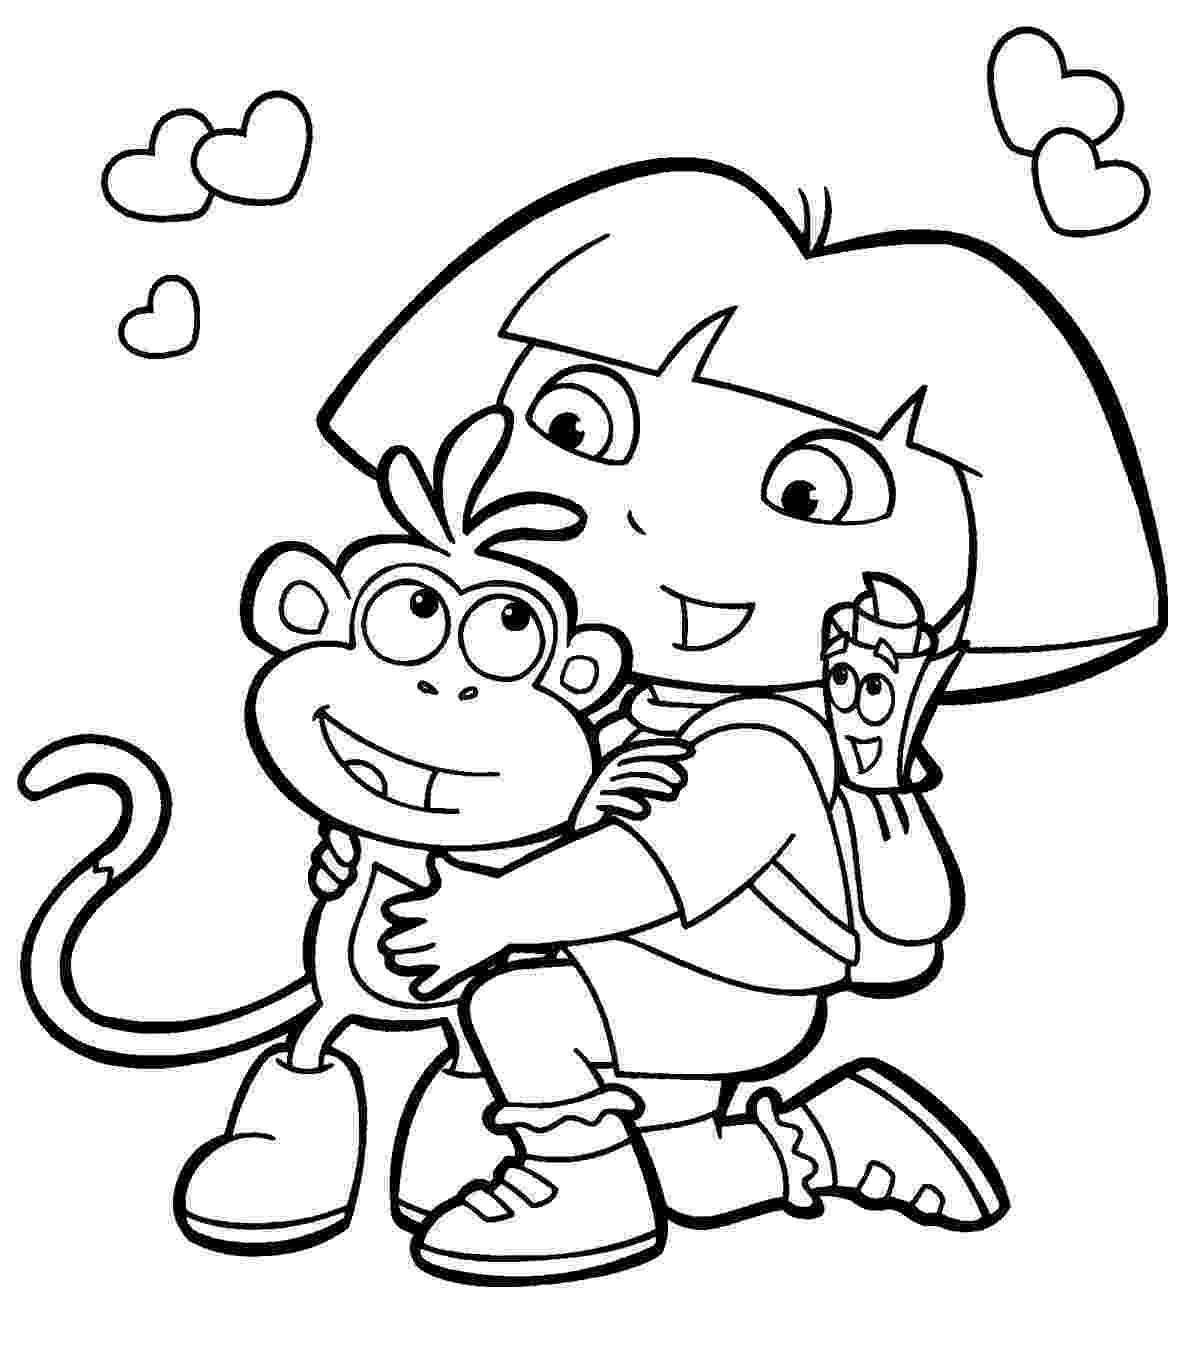 dora black and white coloring pages dora coloring pages free printables momjunction dora coloring and pages black white